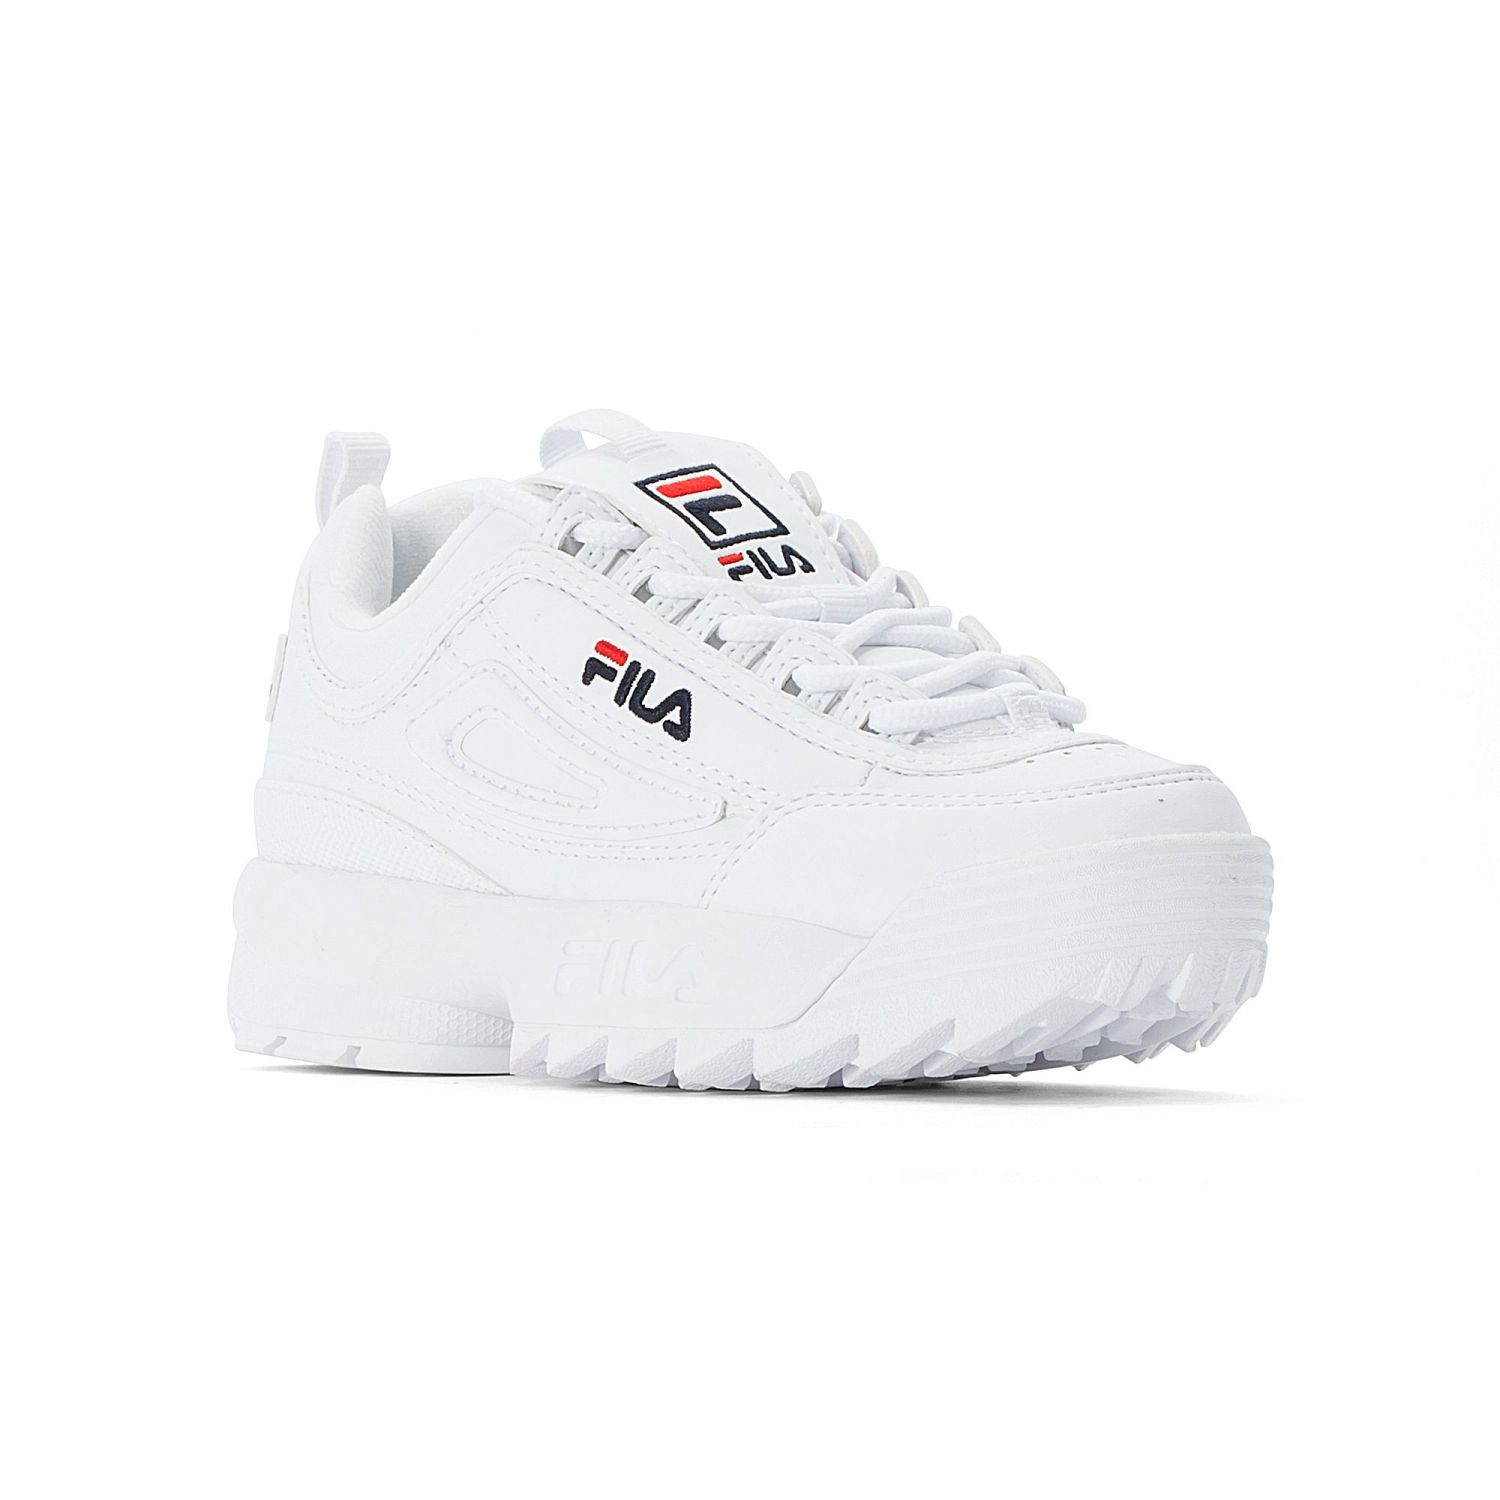 Fila Disruptor Kids White White Fila Official